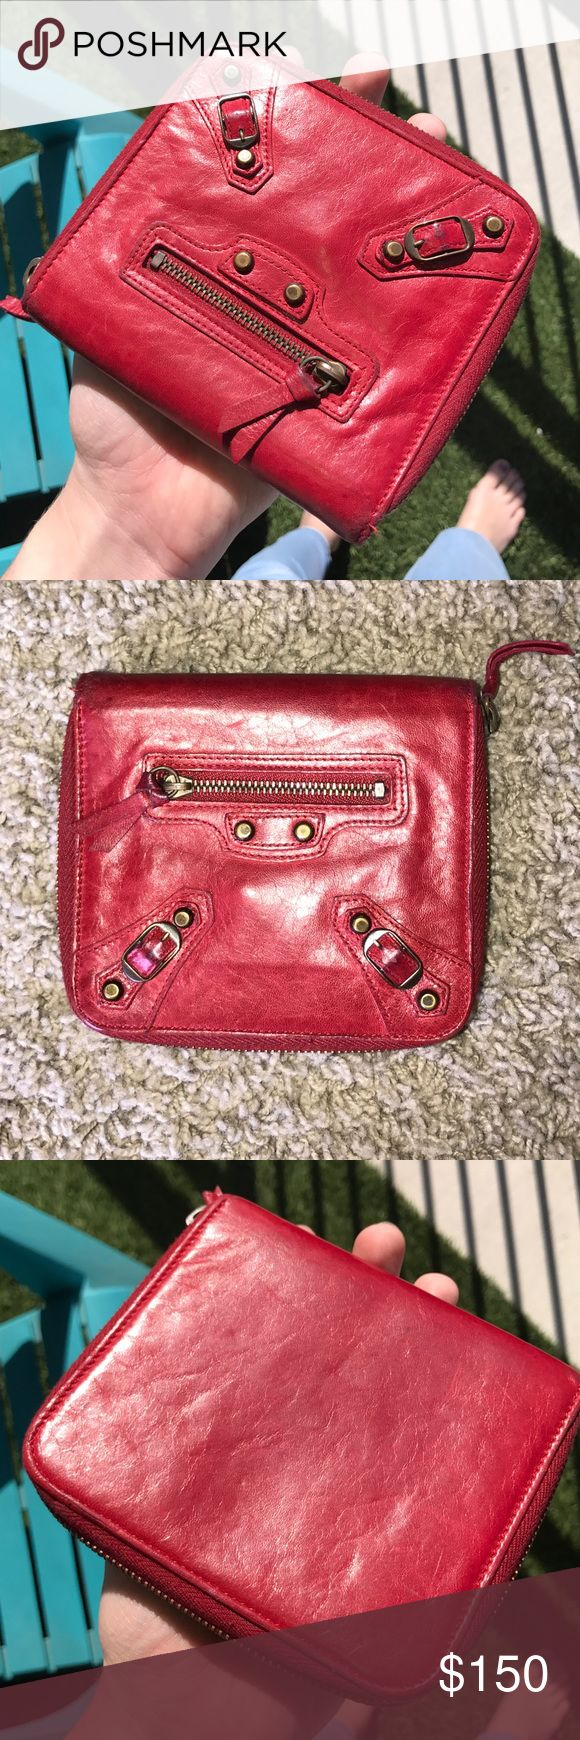 Red Balenciaga Wallet! Does have signs of wear and minor scratches on the outside as well as marks on the inside pocket and card slot, all pictured. The price reflects the wear & with that being said it's still a great wallet and Balenciaga only looks better as it ages the way the Leather is. It's a great size for small purses & crossbodys has 5 card slots, one zippered pocket & large pocket for bills.   Was bought at Barneys NY but over the years I've lost the tags and dust bag so, it only…